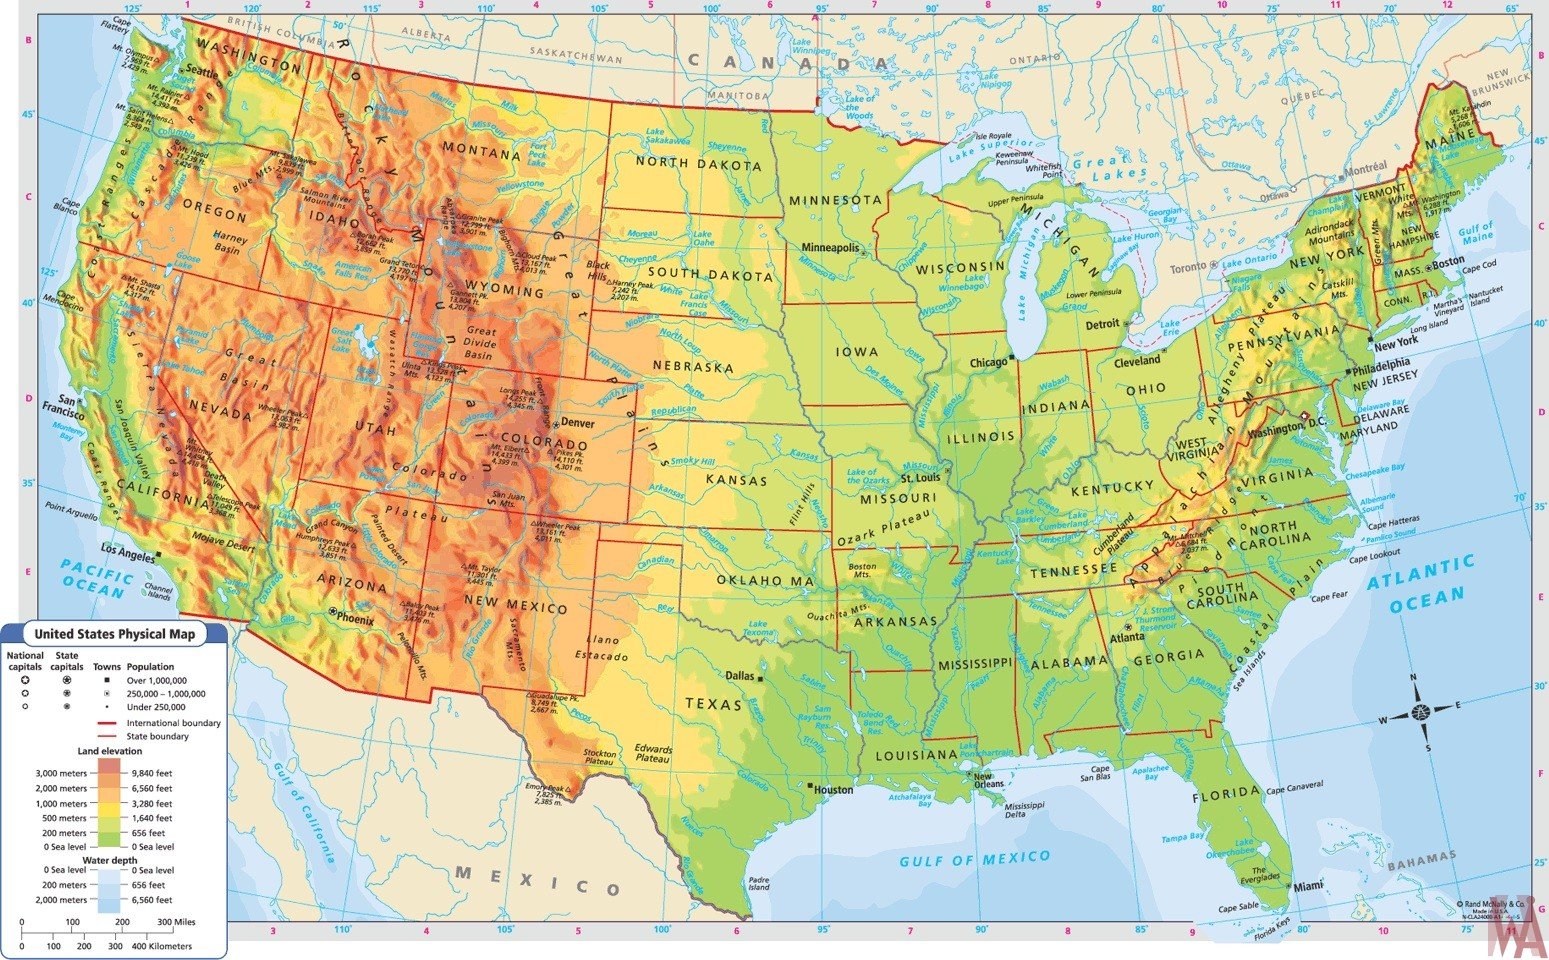 Geographical Map Of Usa Large Political,physical, geographical map of USA 2 | WhatsAnswer